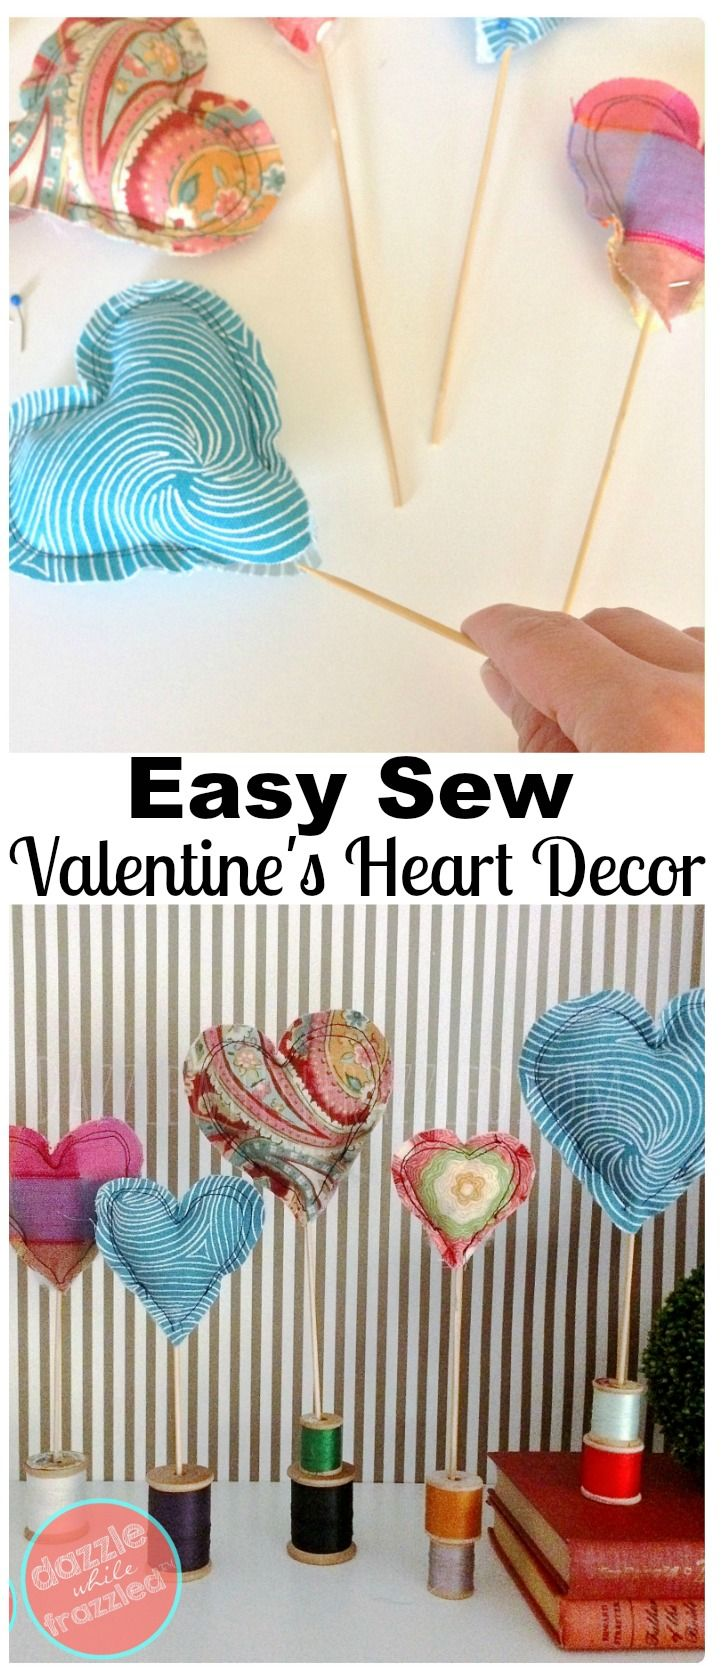 430 best DIY Crafts and Home Decor images on Pinterest   Craft, Home ...